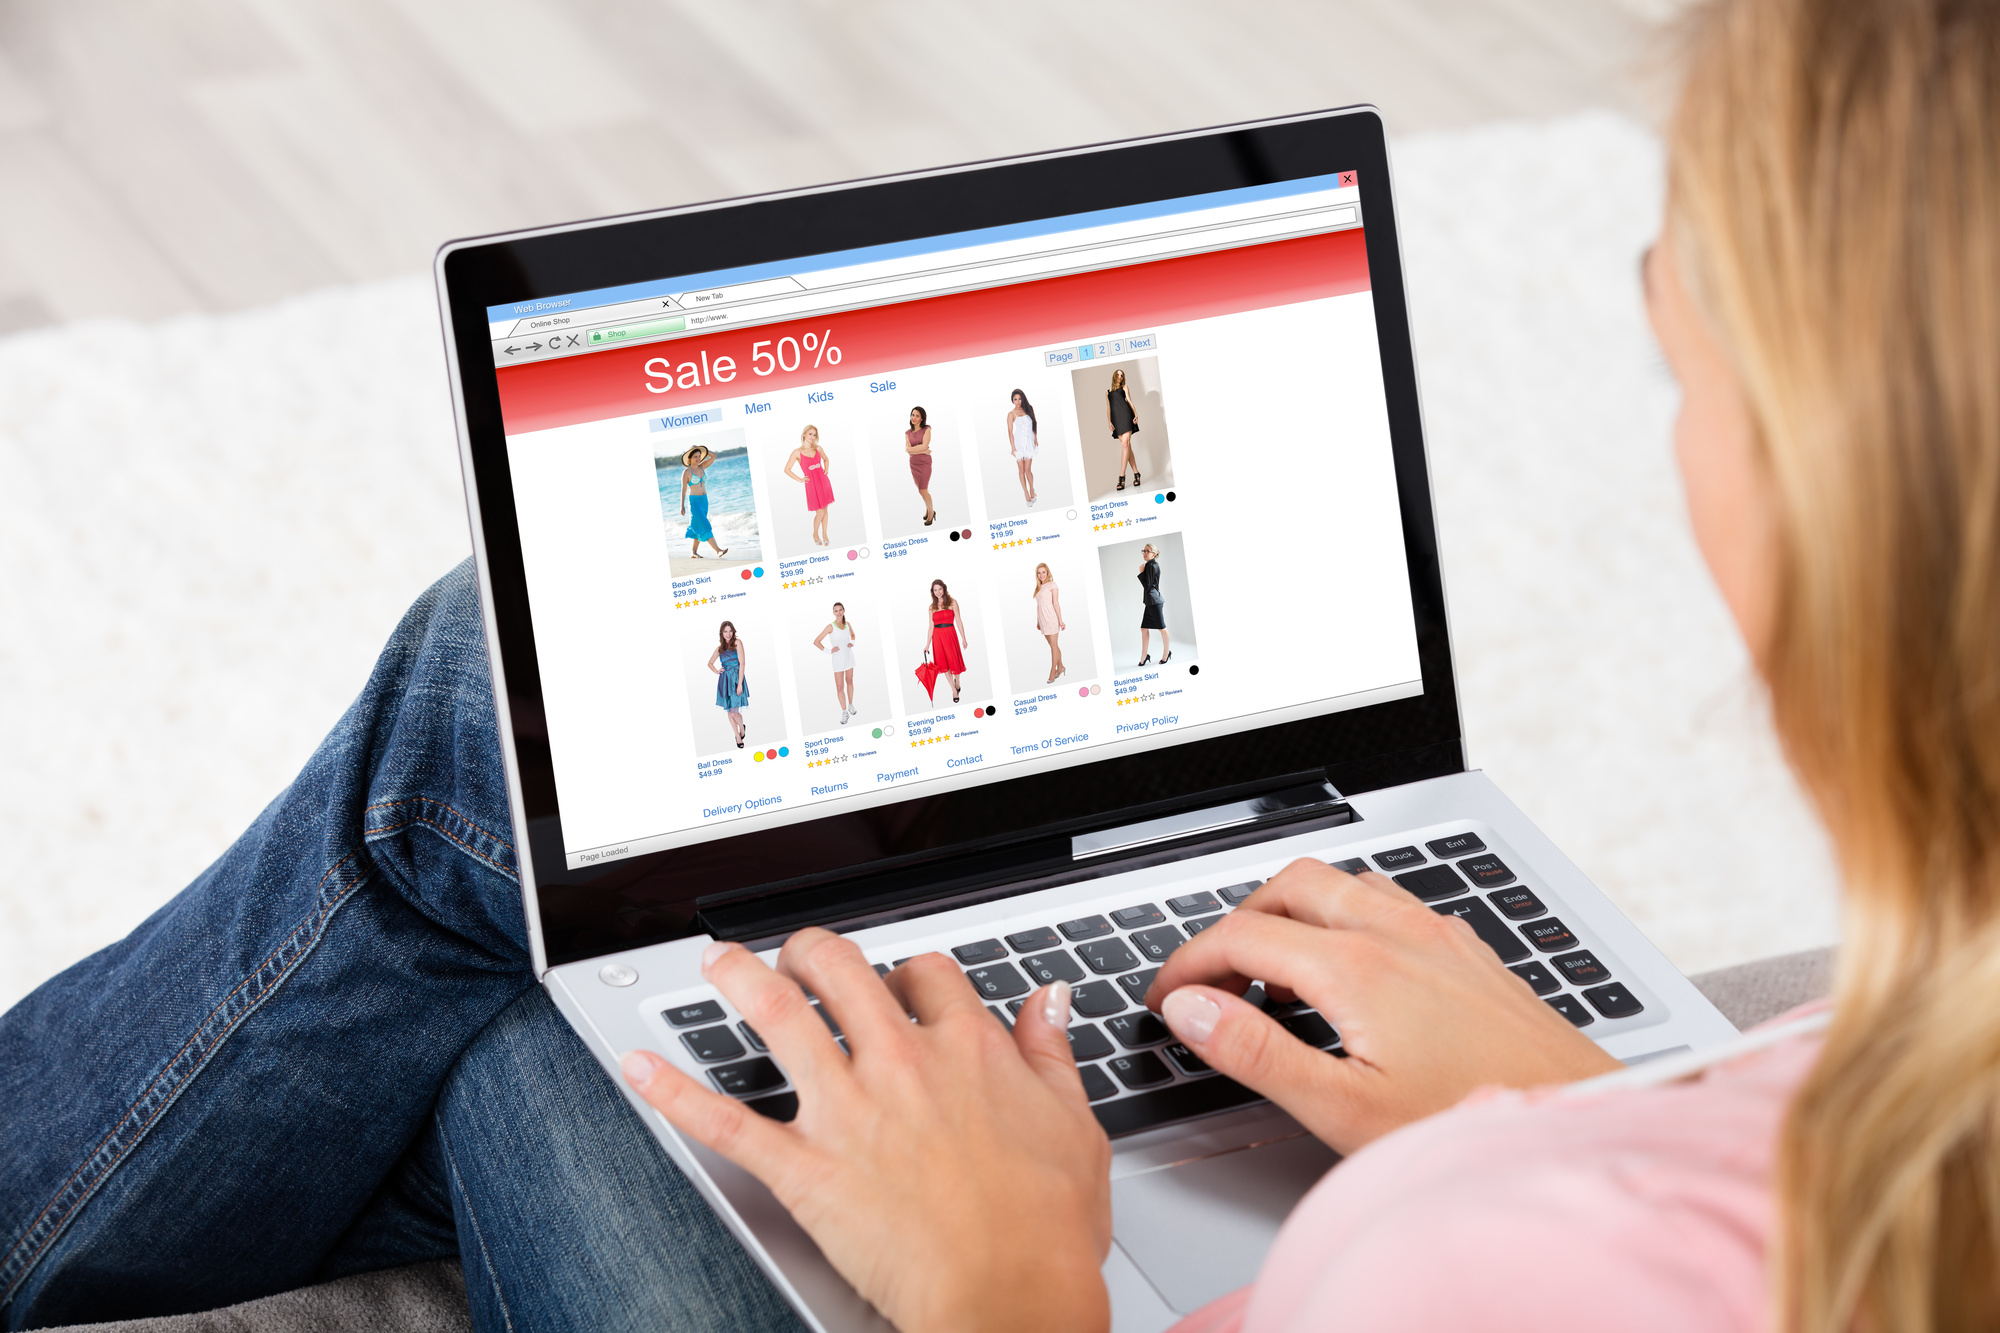 Practical eCommerce Tips to Help Drive More Customers to Your Shop